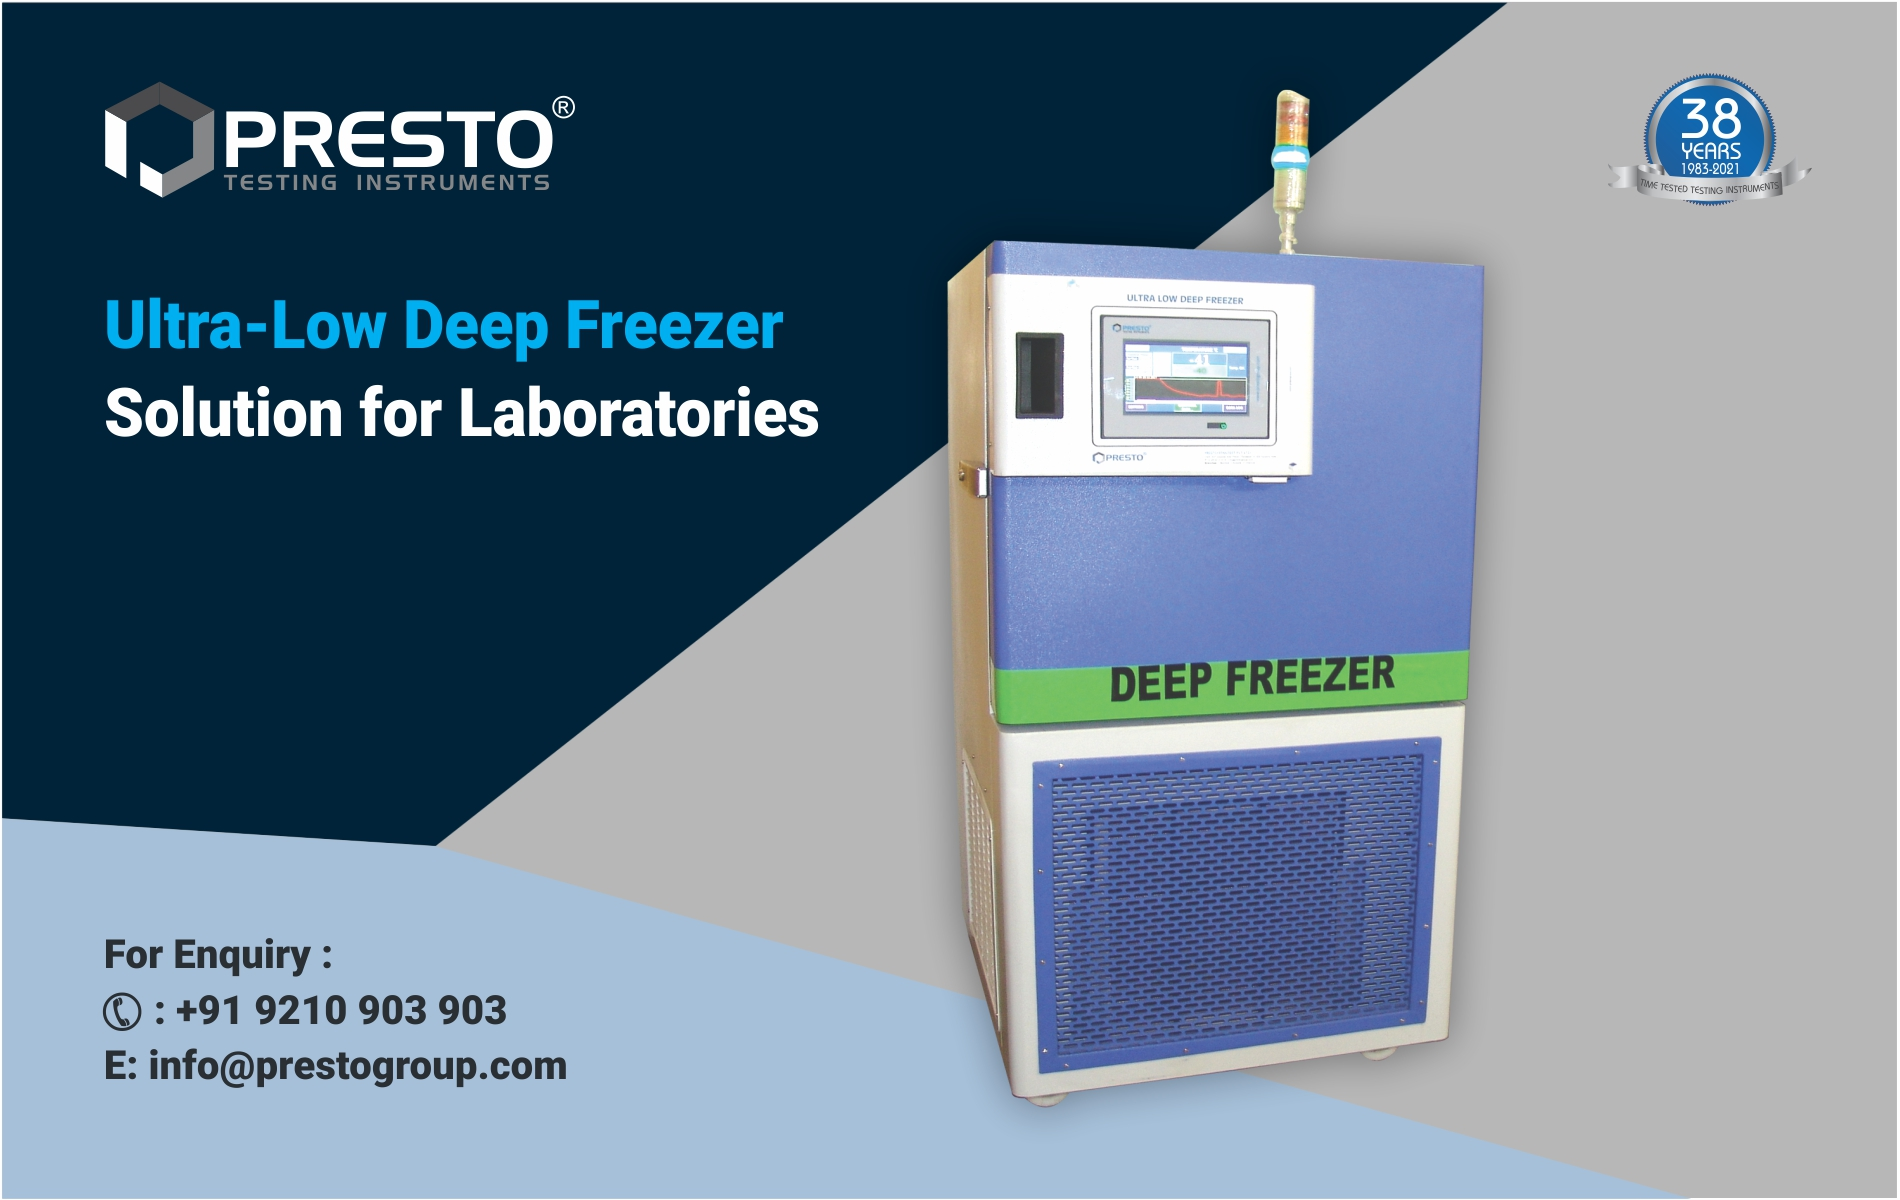 Ultra-low Deep freezer Solution for Laboratories